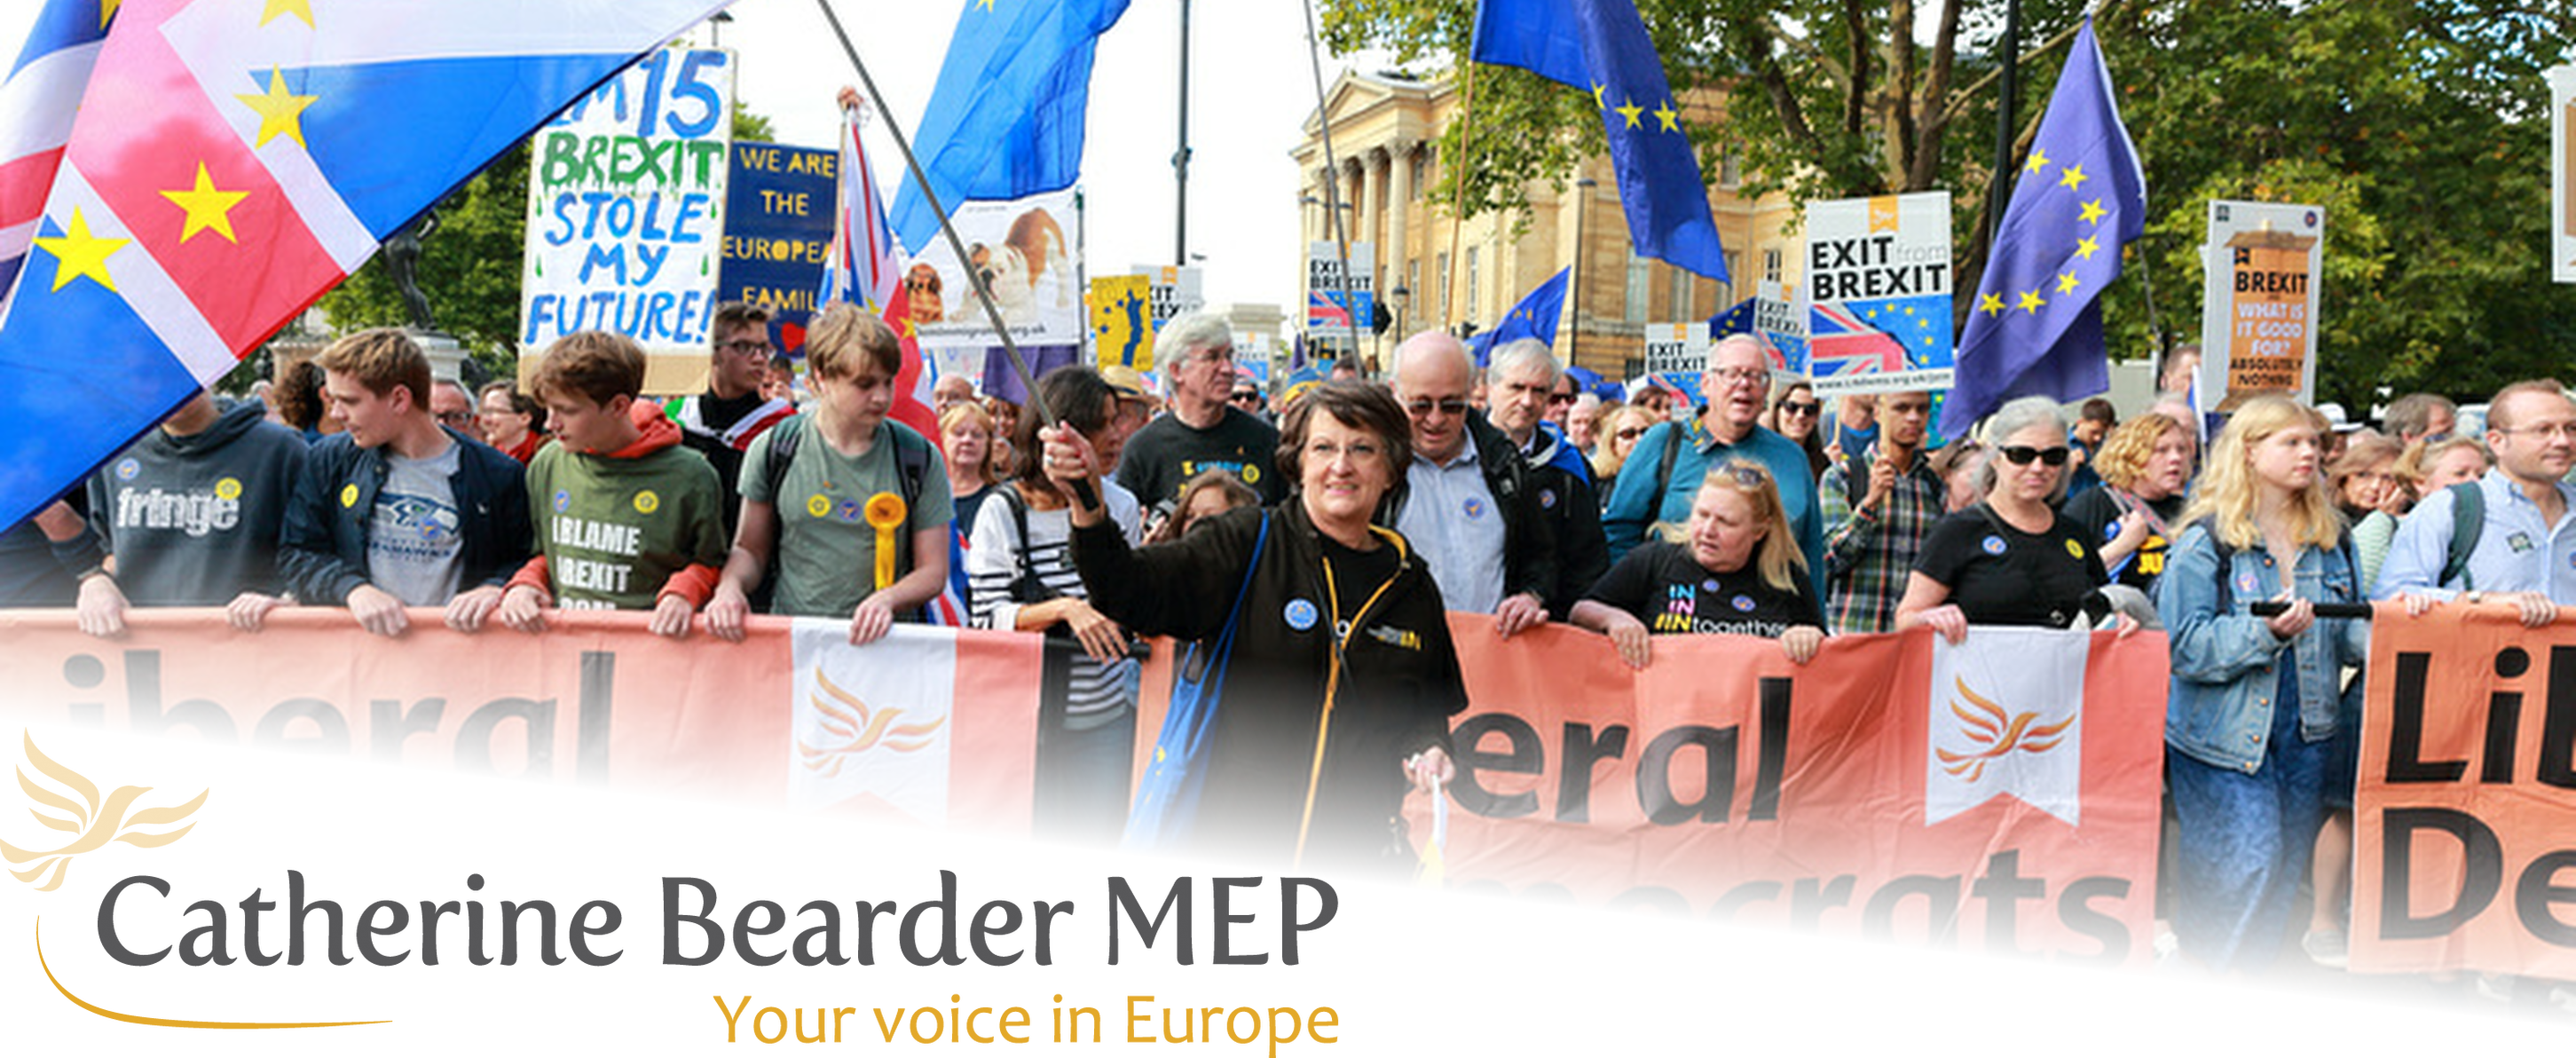 Enable images to view this image. Catherine Bearder leads a European rally